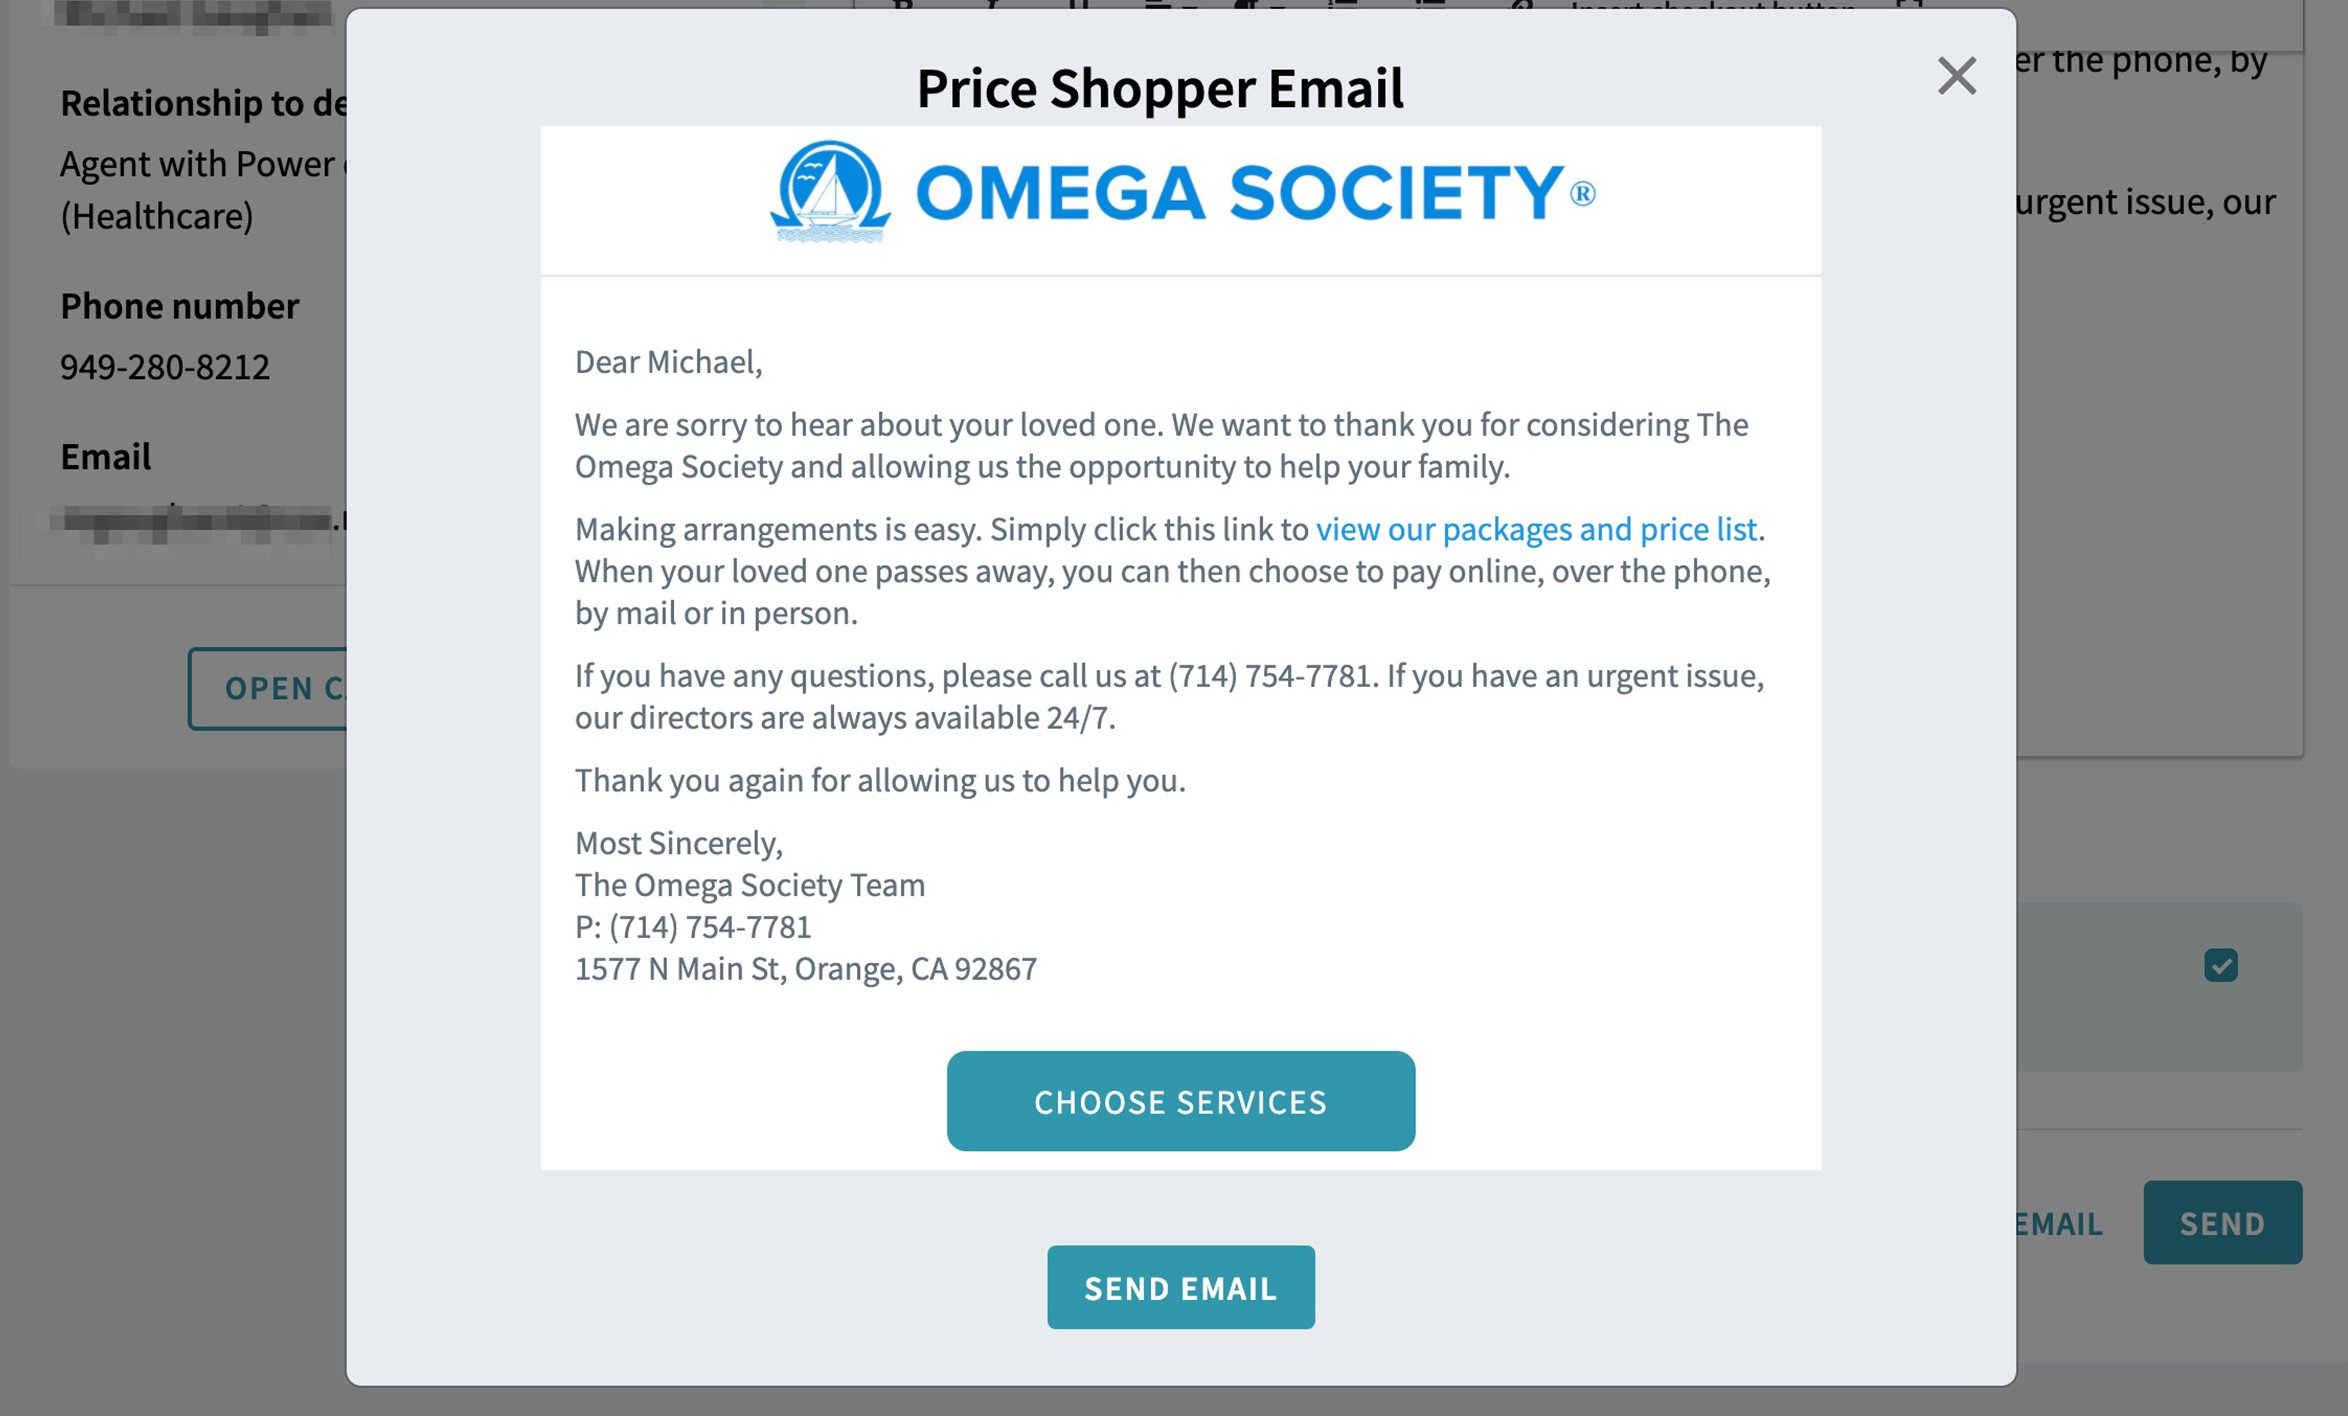 Price Shopper Email Preview